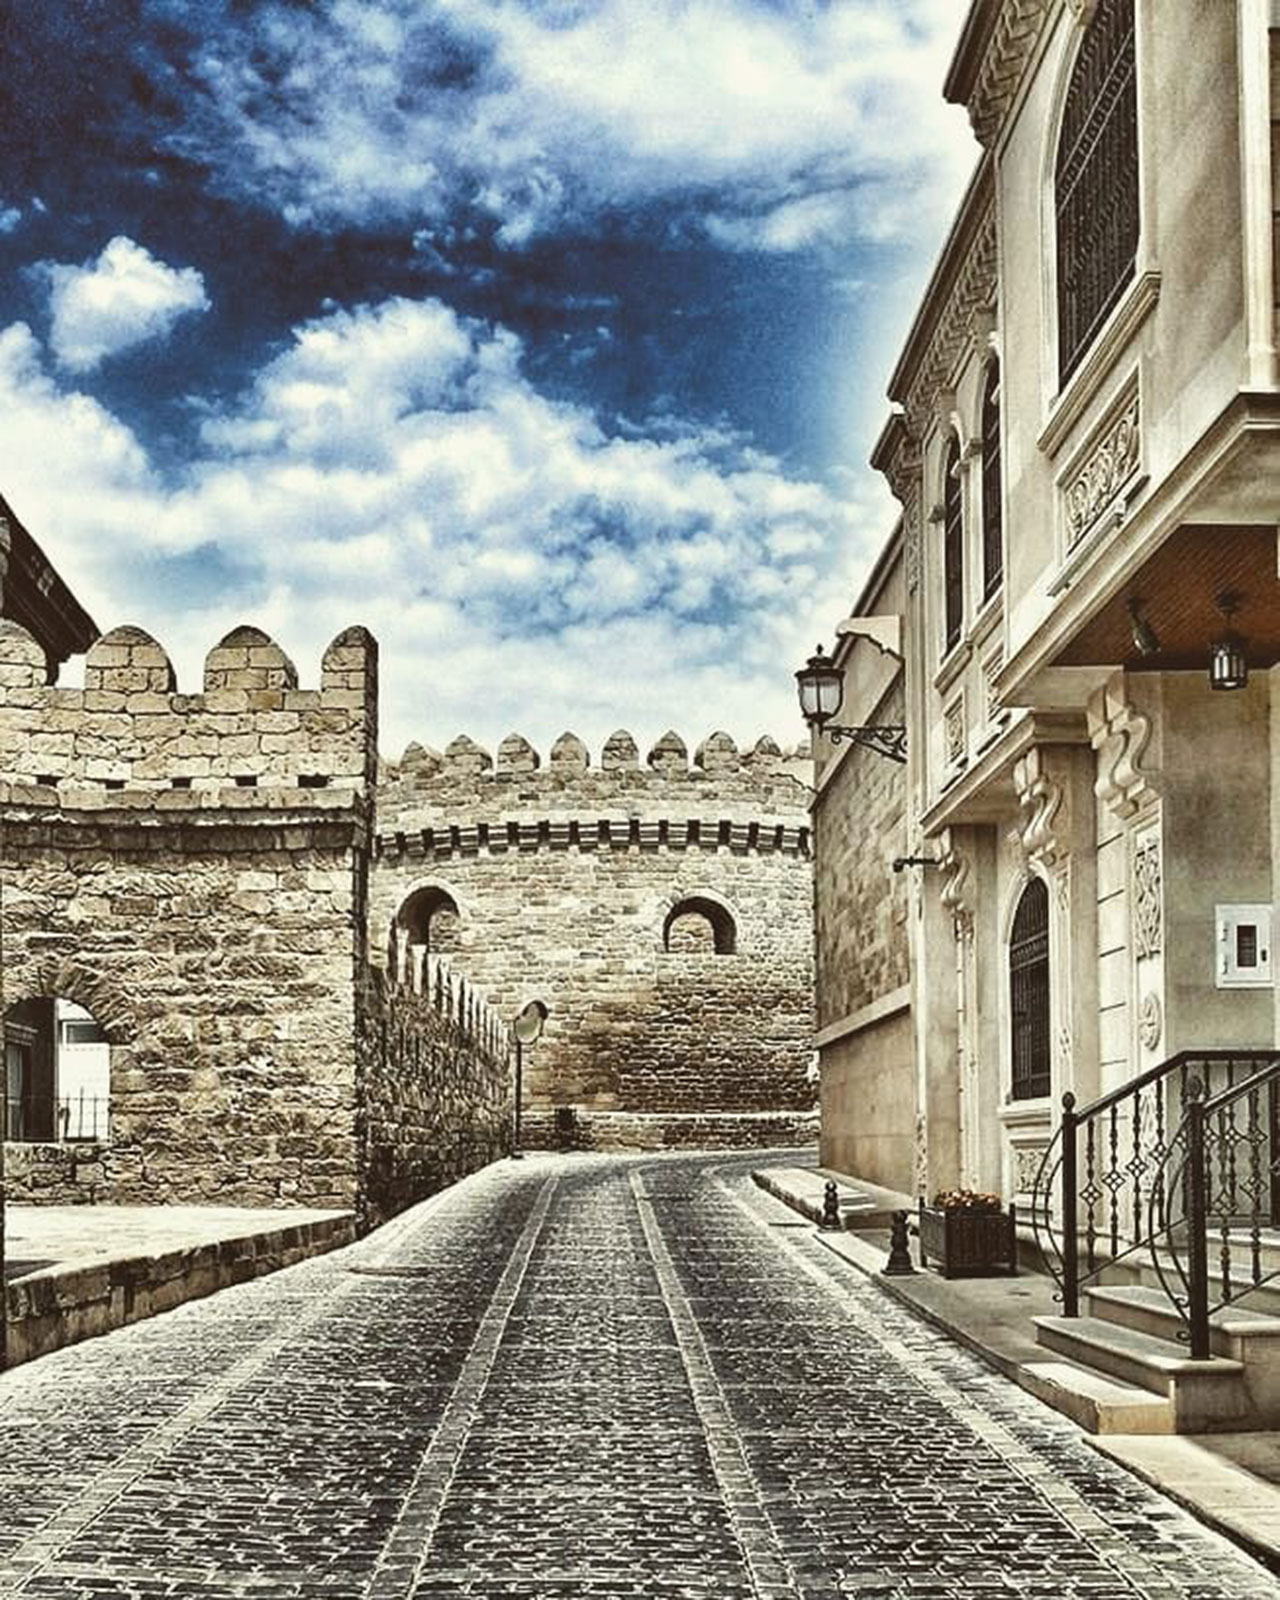 Do a Walking Tour of the Baku Old City